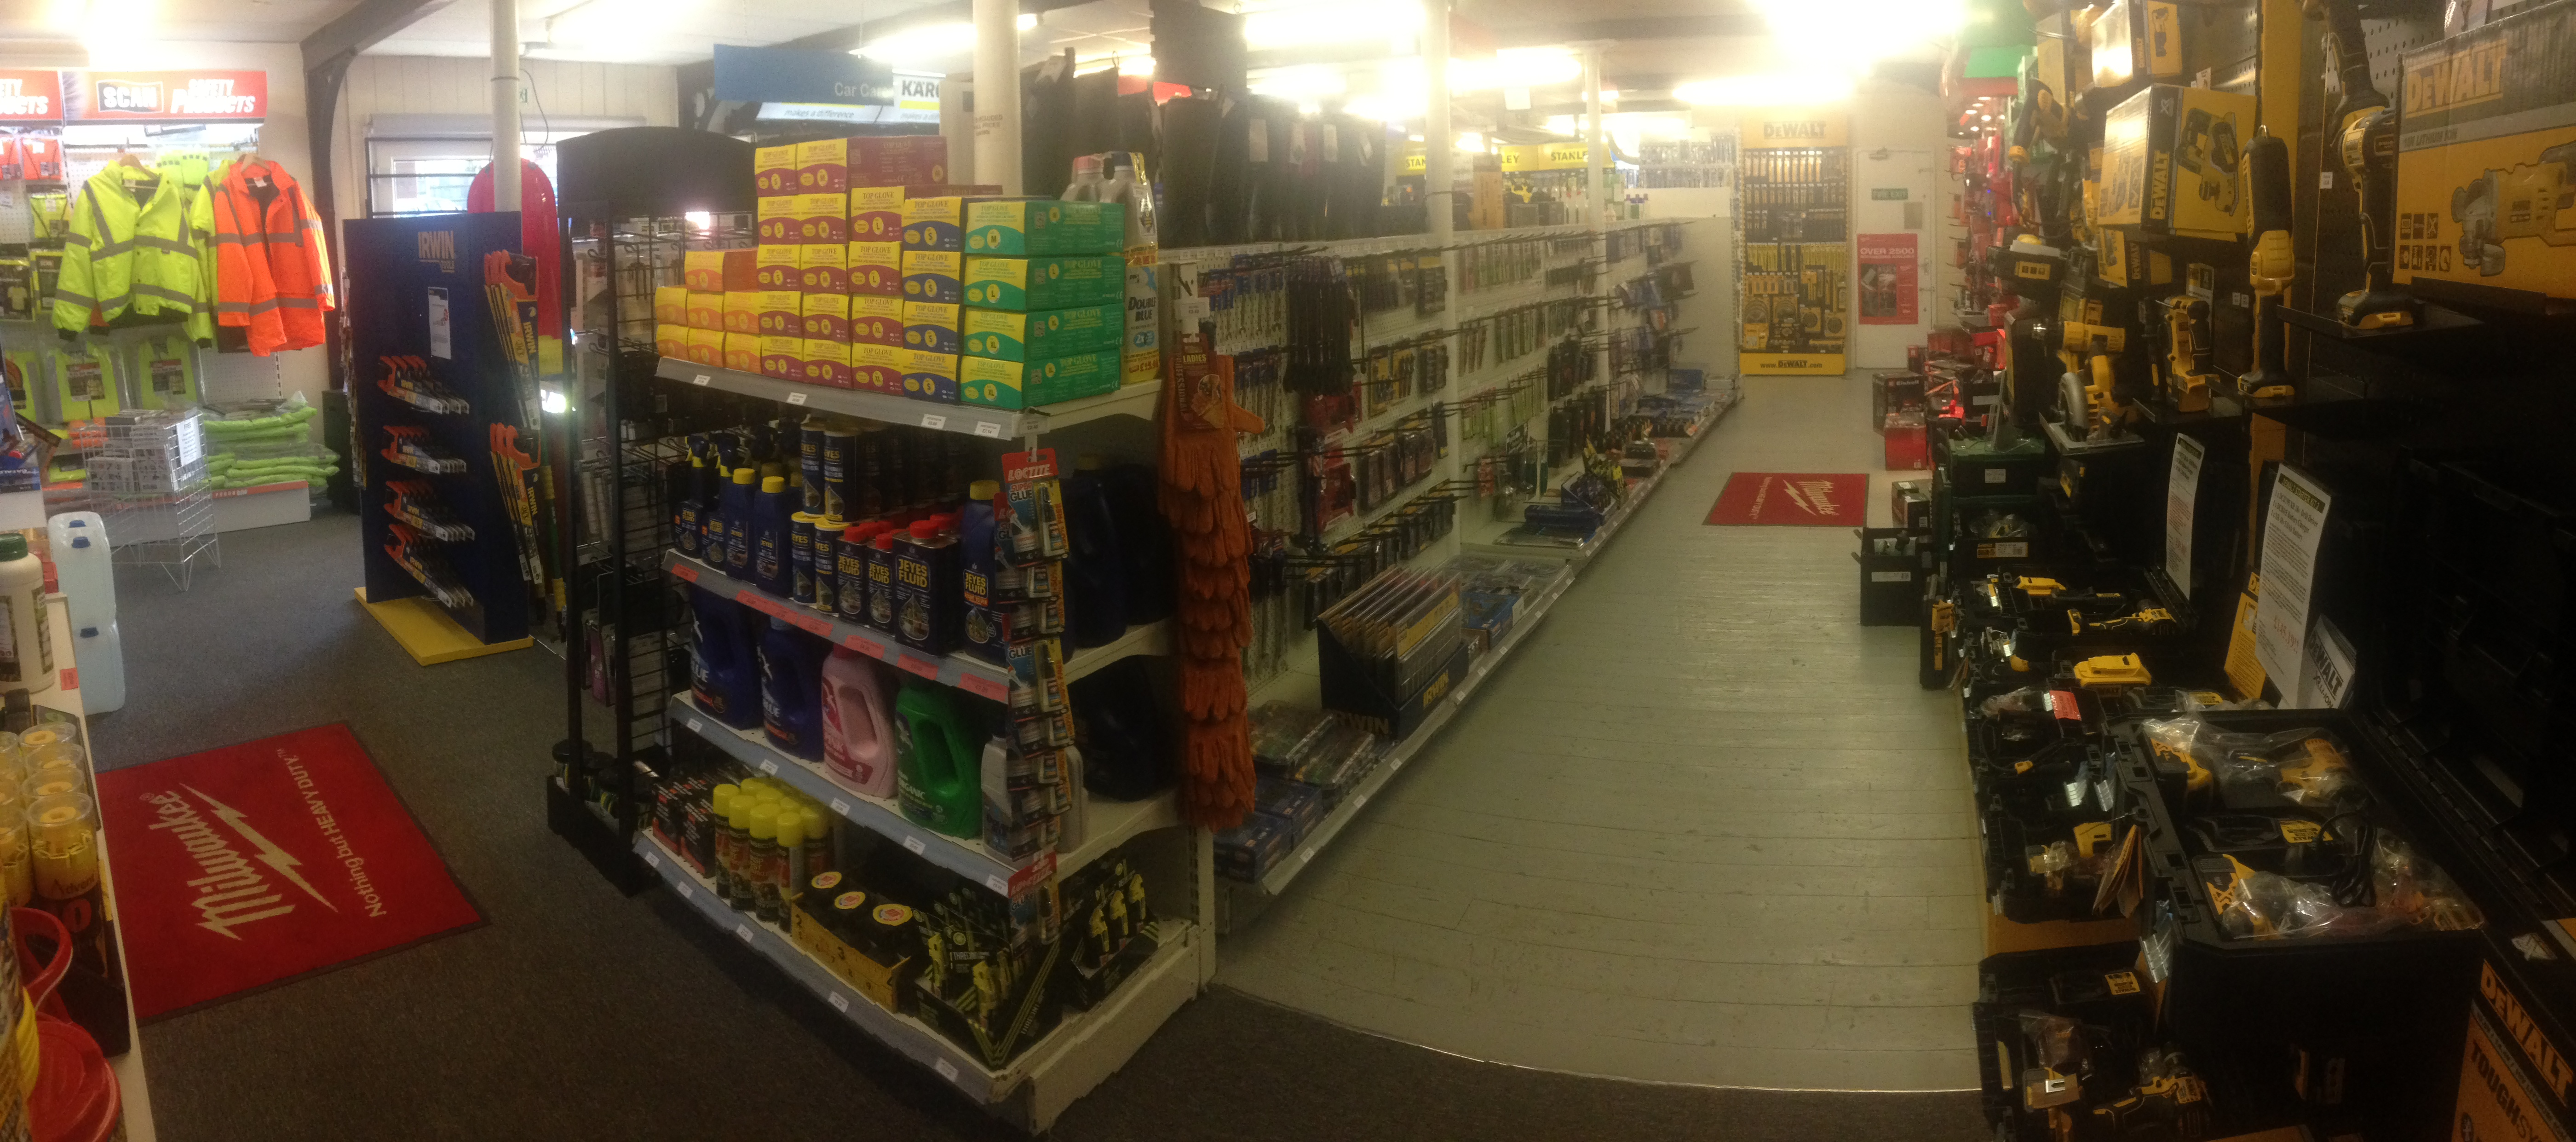 HTS Supplies - Chedgrave, Norfolk NR14 6HD - 01508 520768 | ShowMeLocal.com